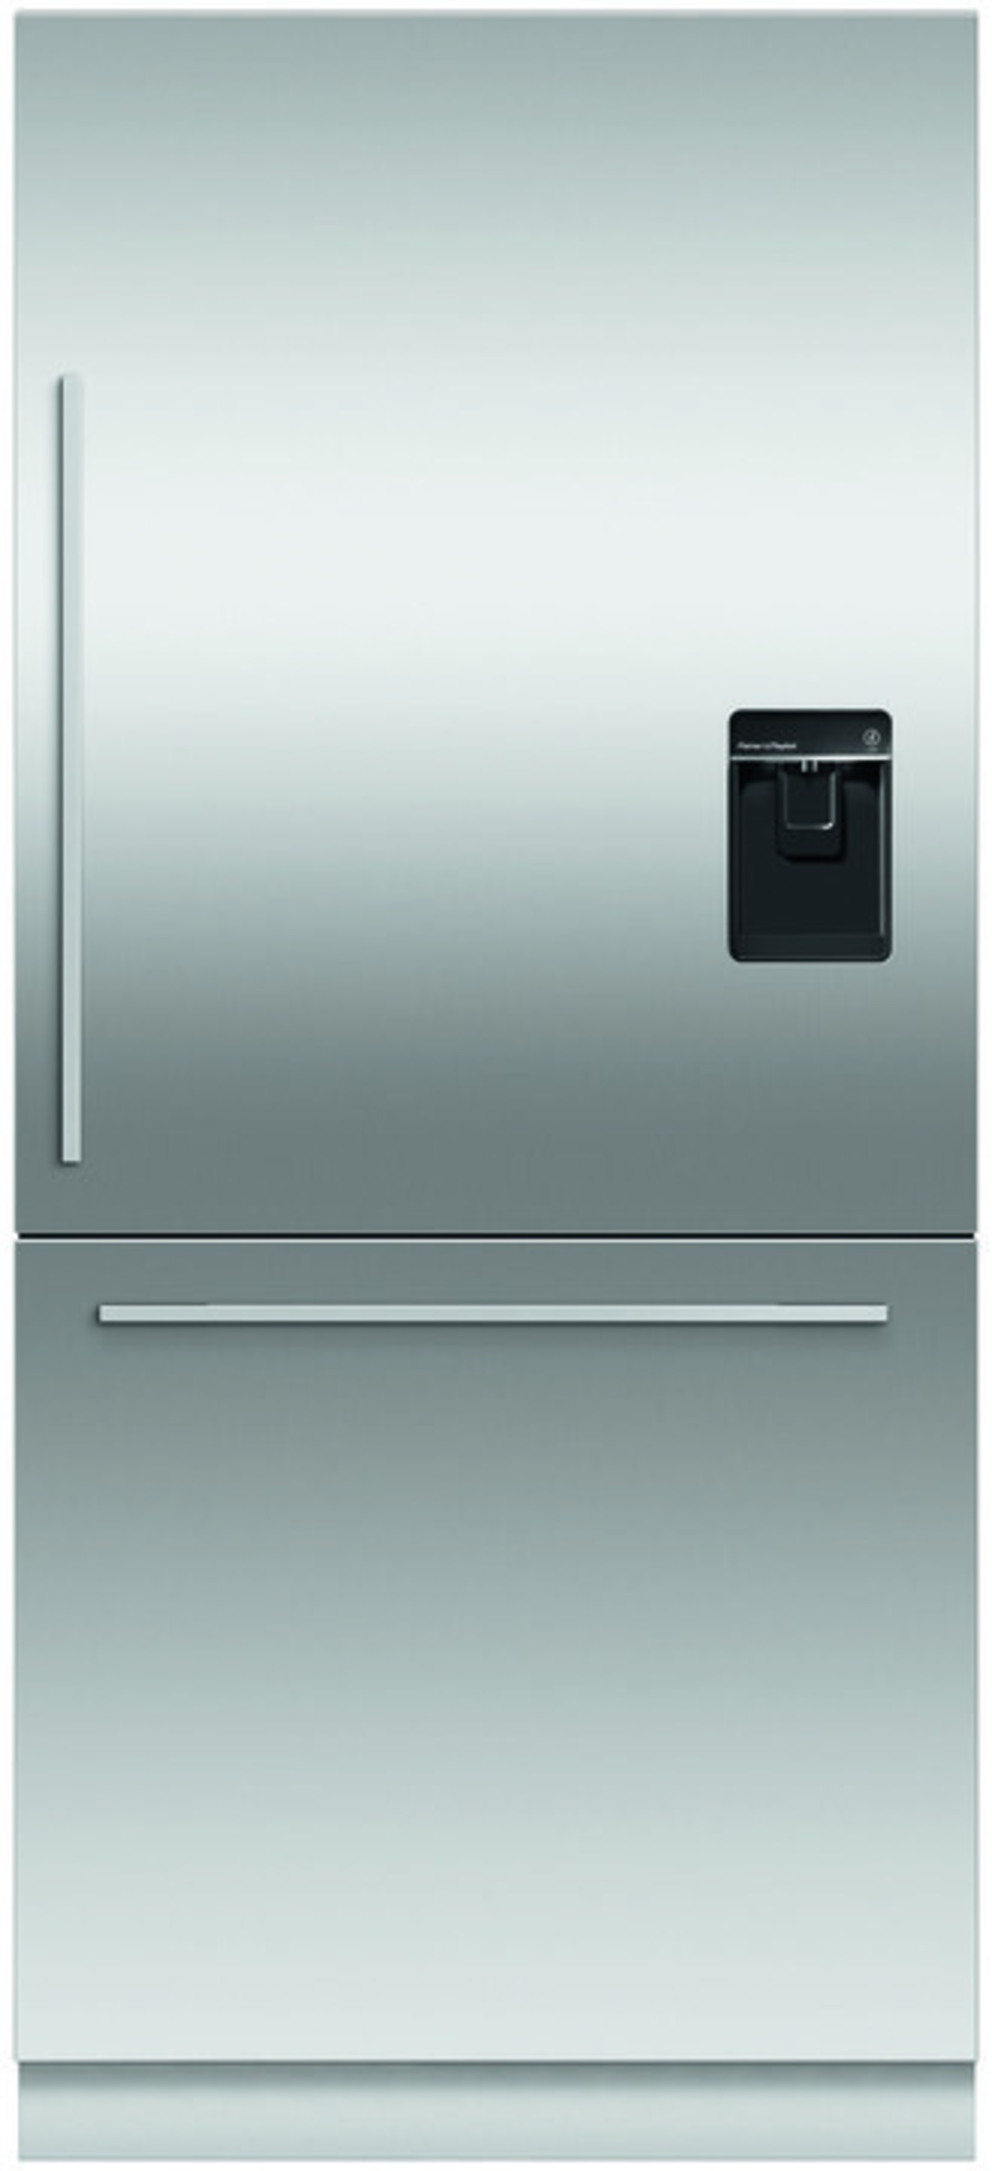 Réfrigérateurs Fisher&Paykel RS36W80RU1 + RD3684RU (84'' F&P)